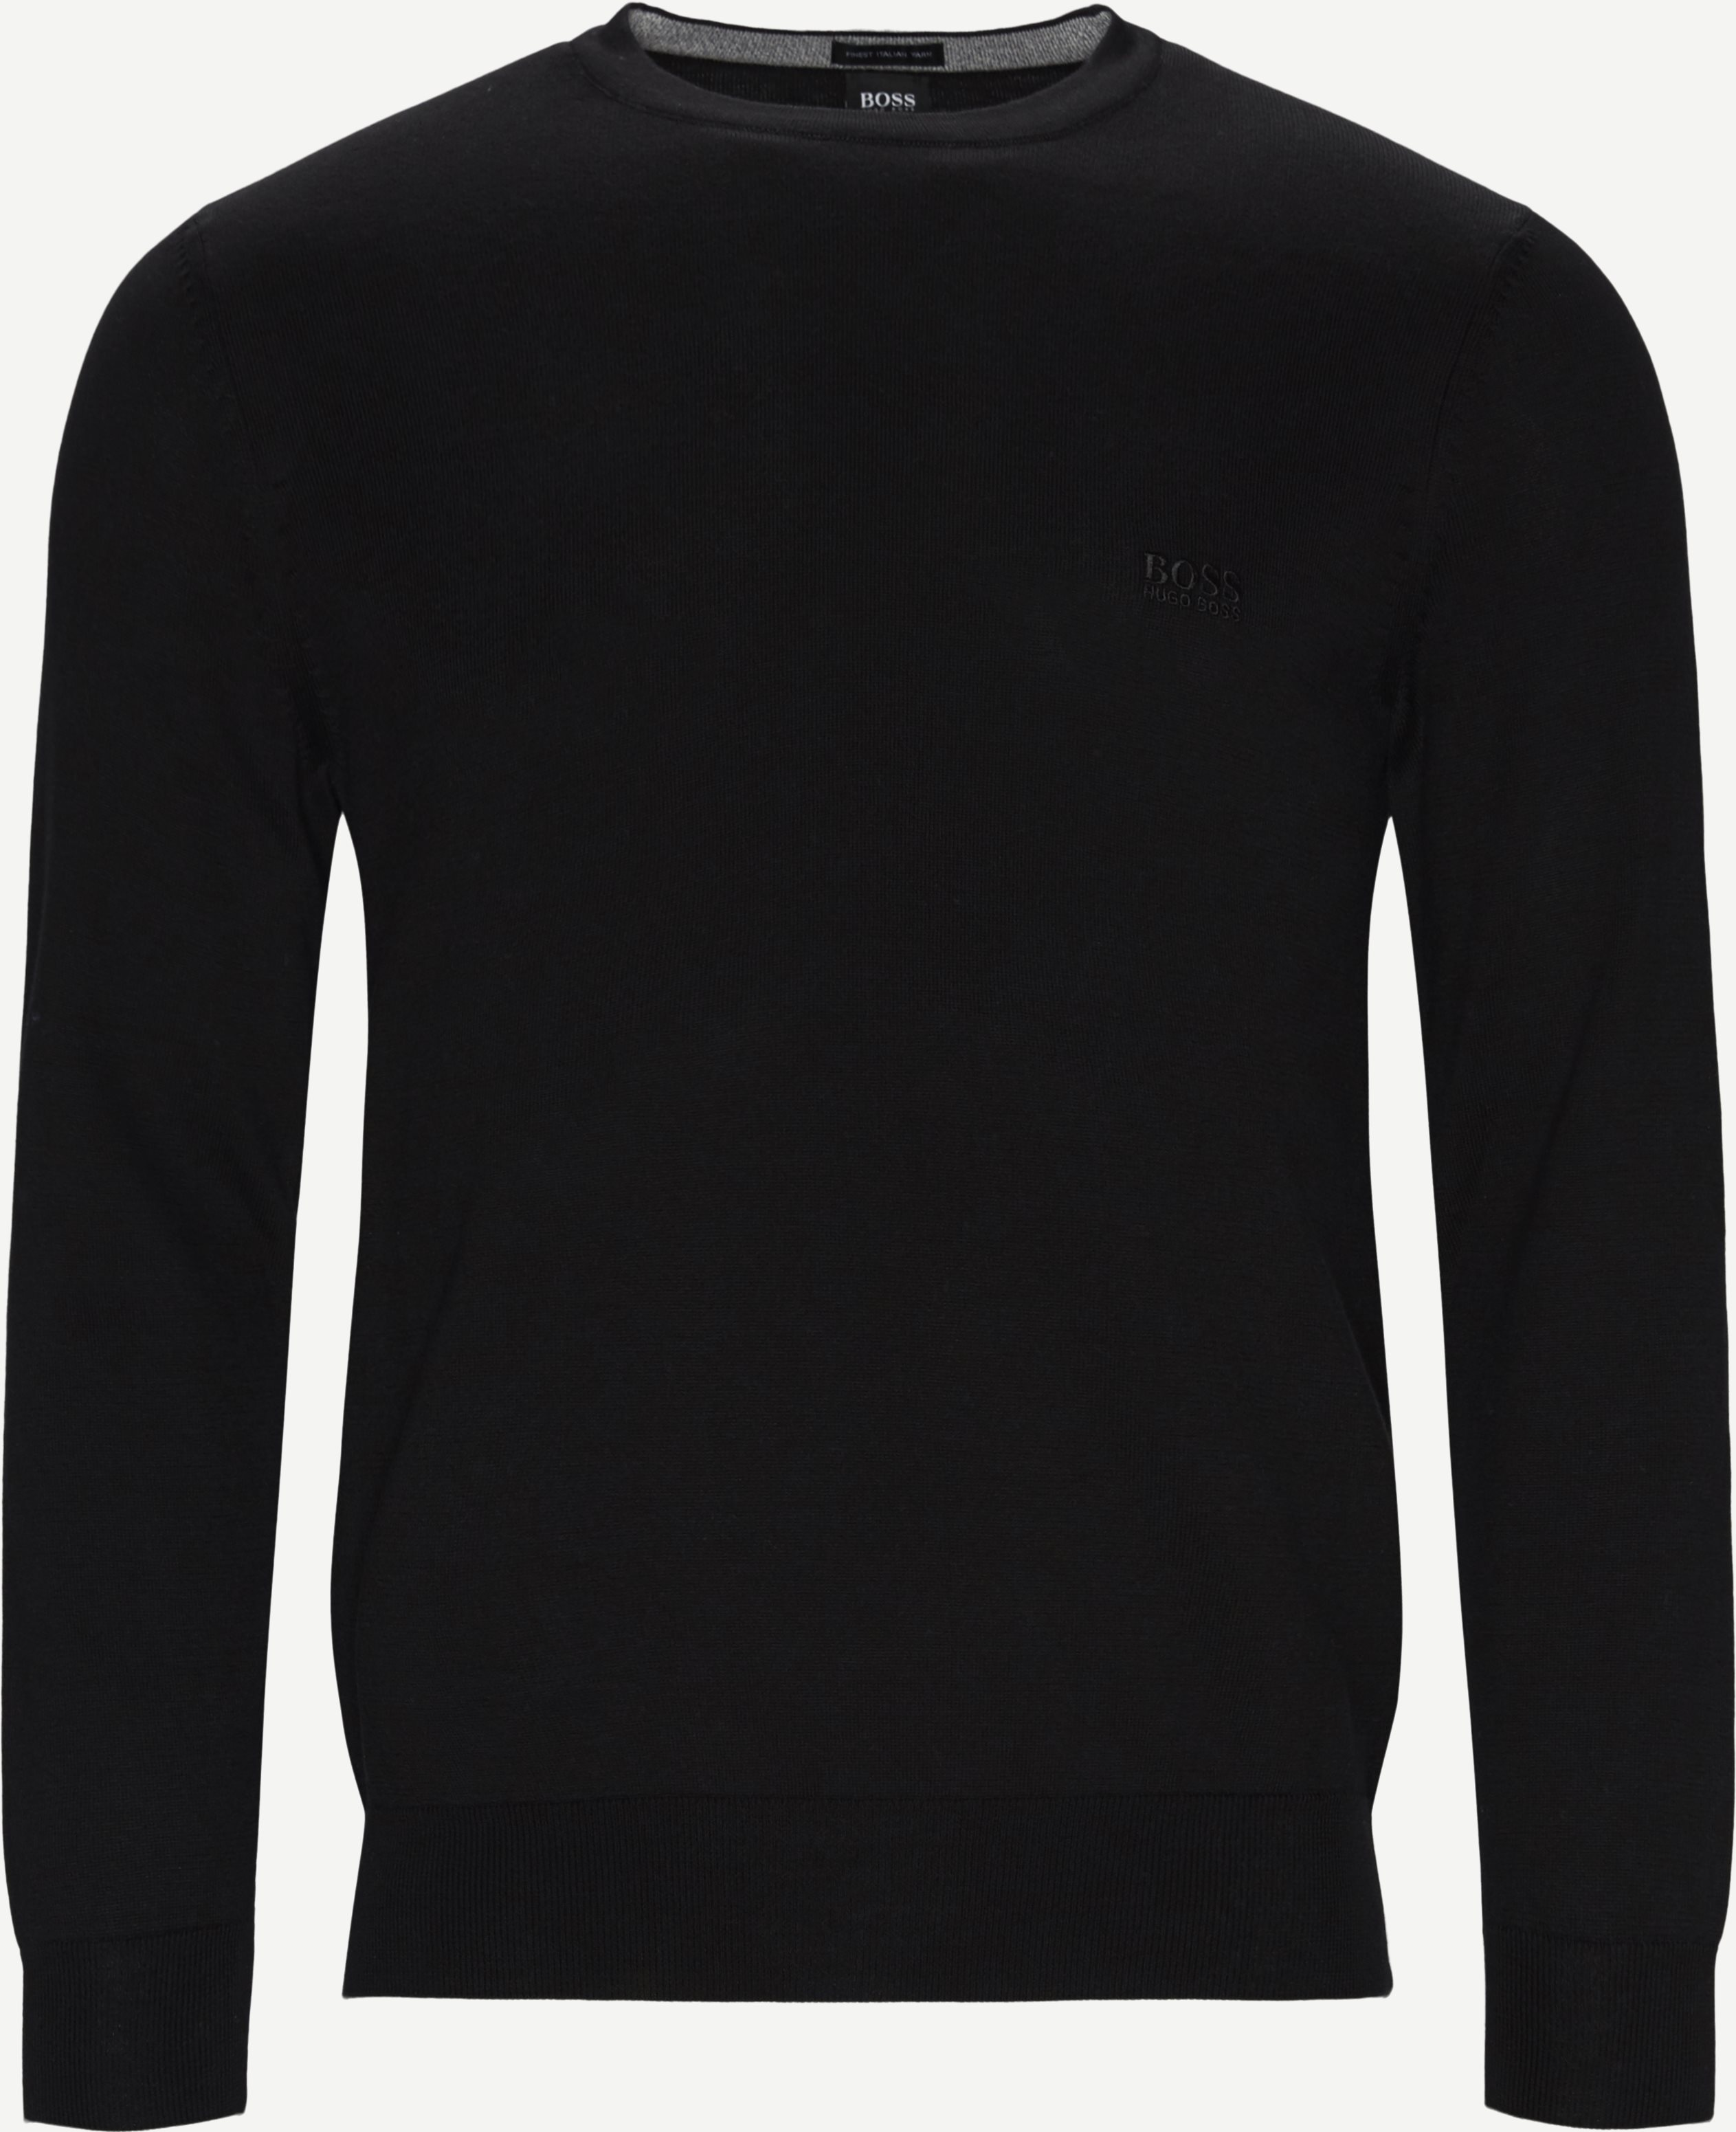 Knitwear - Regular - Black